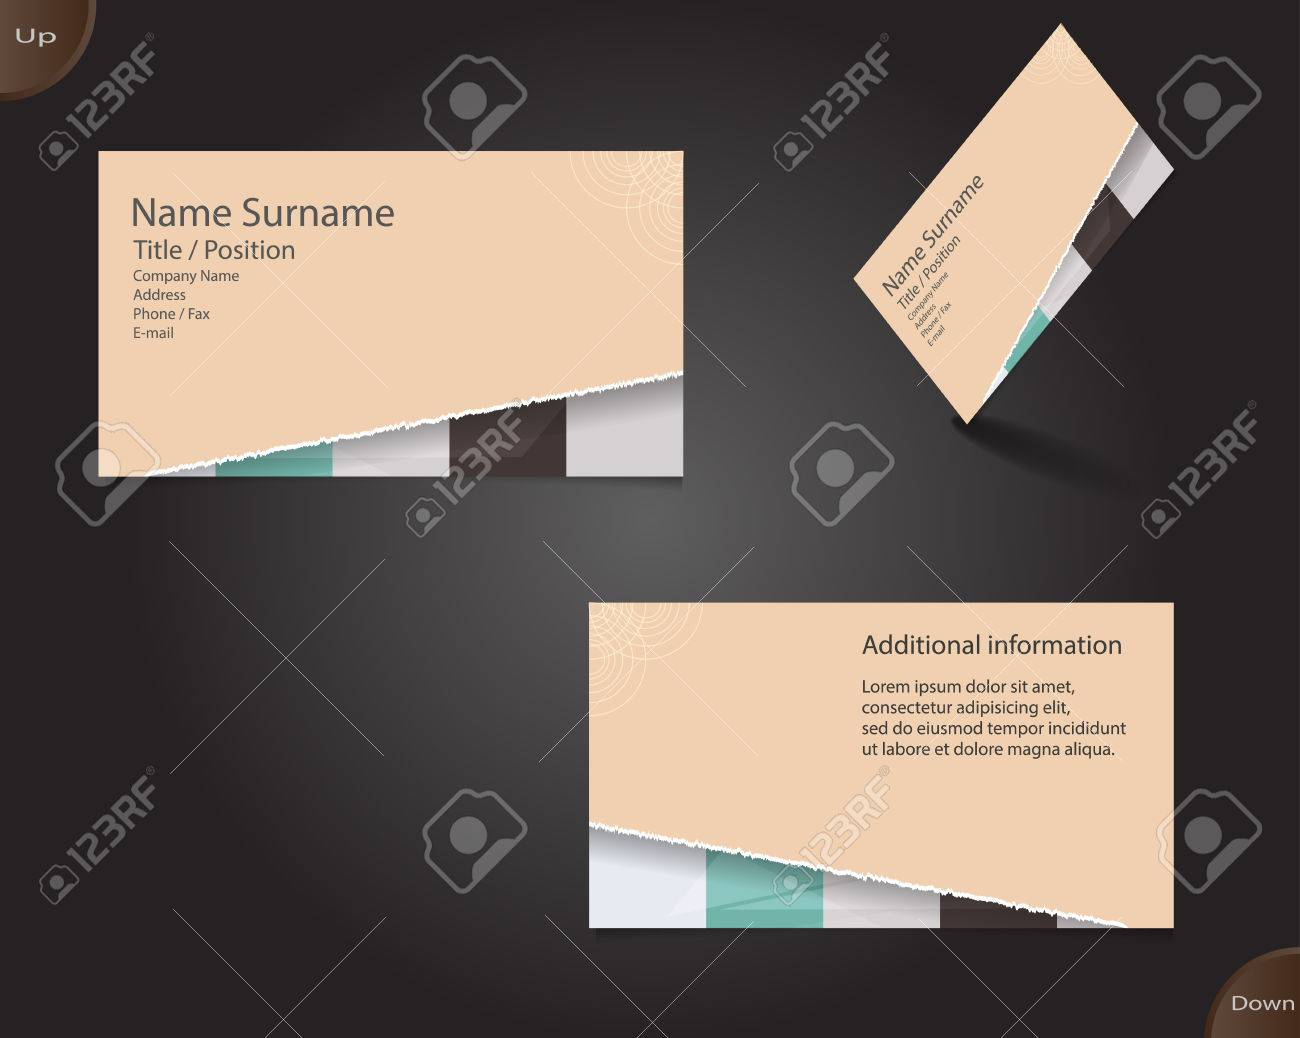 Business card layout with modern creamy colors and ornaments..